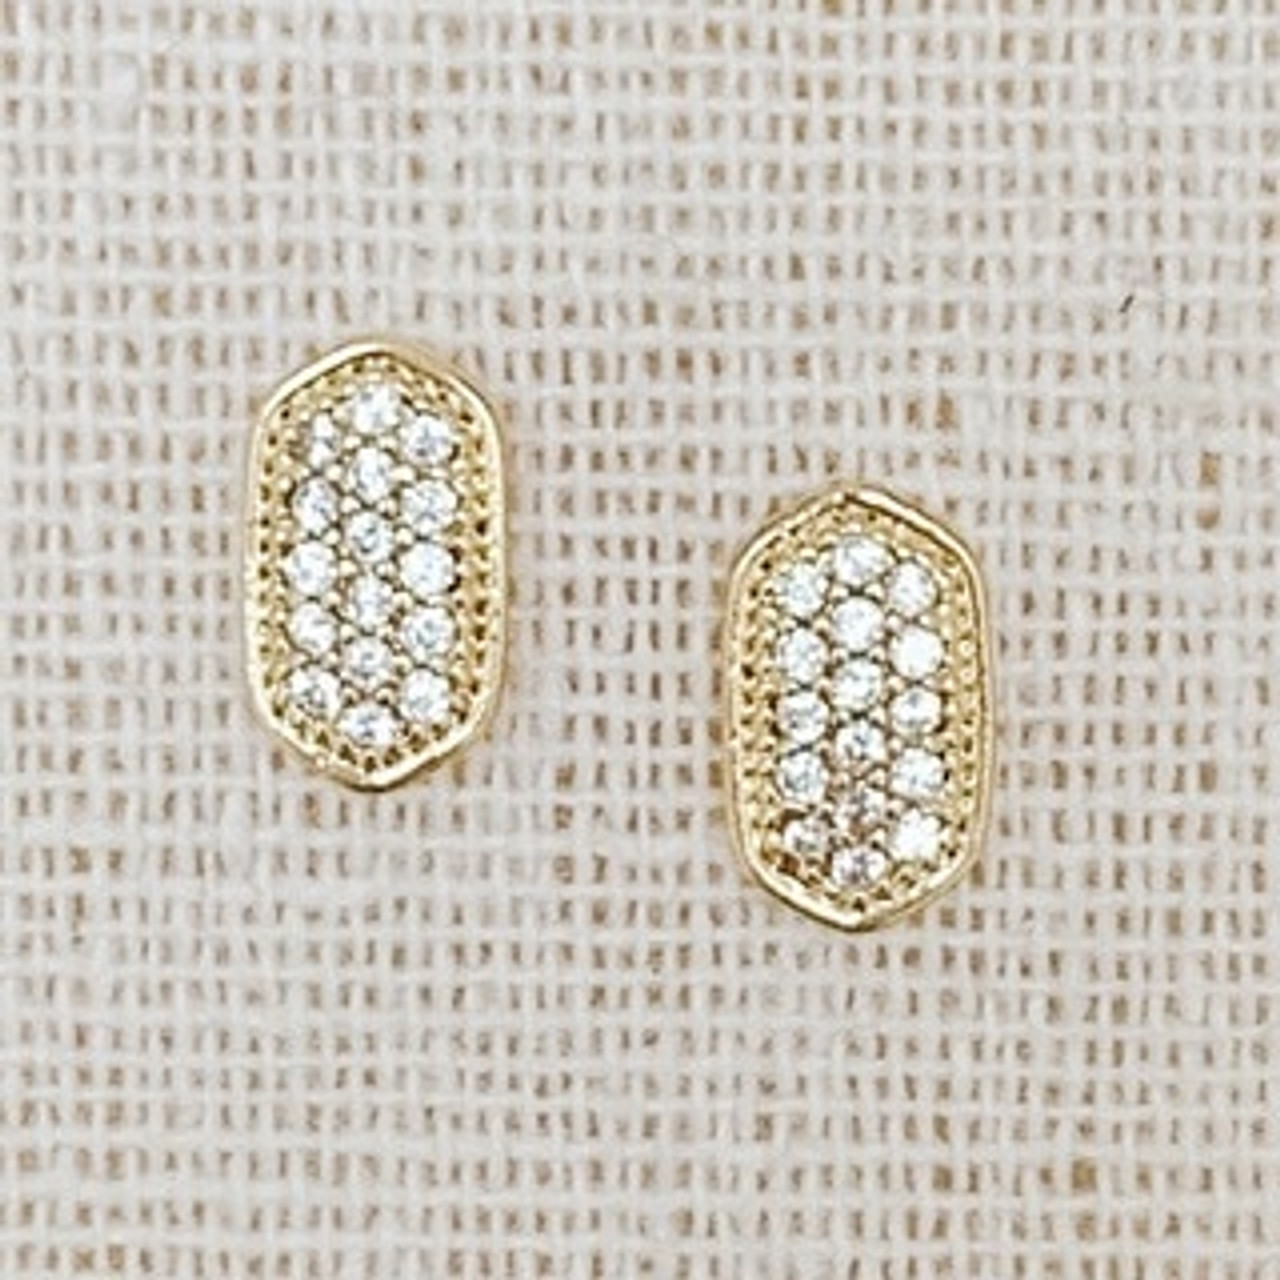 Sparkly Dainty Stud Earrings in Gold, Cubic zirconia, Gold dipped, Sterling silver post, Nickel and lead free.